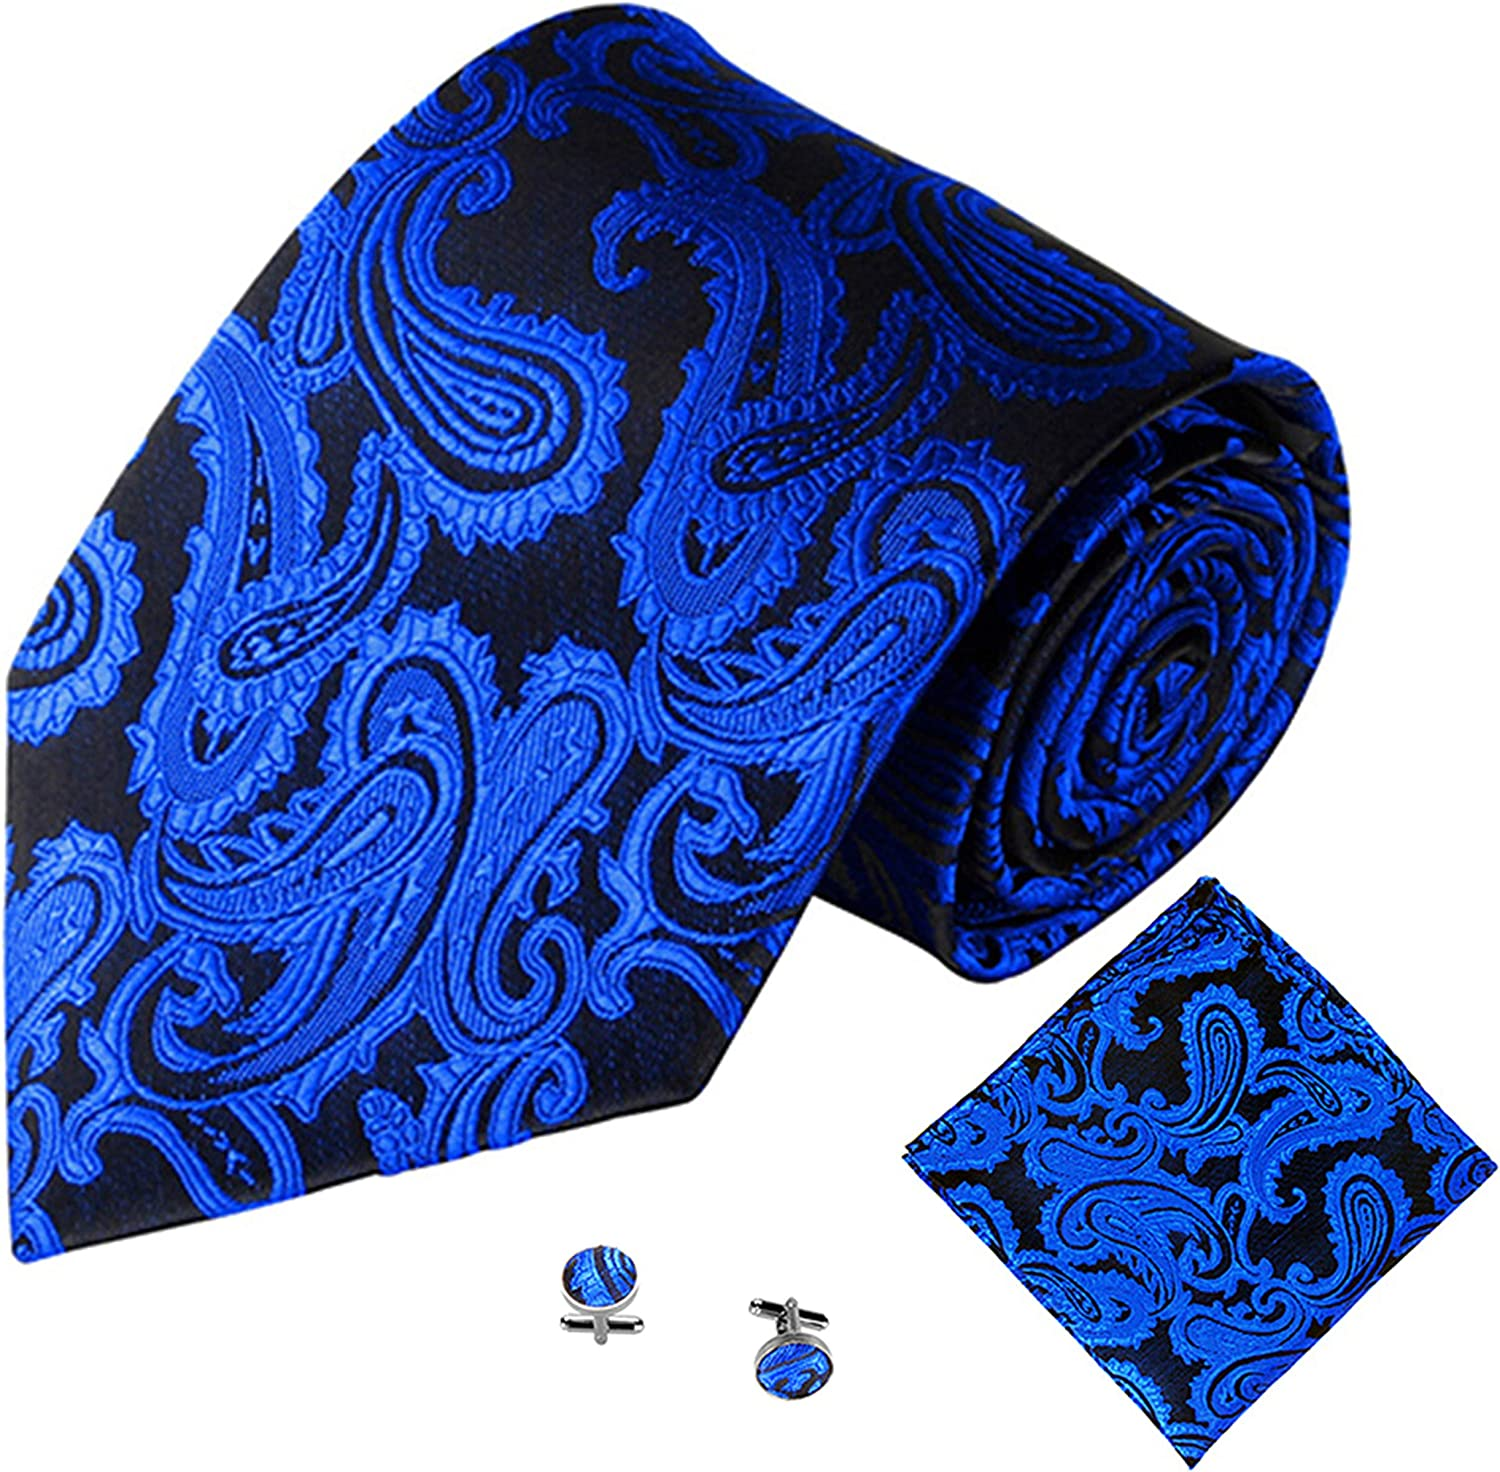 Men's Necktie set Paisley Ties with Pocket Square and Cufflinks Classic Ties for Wedding Business